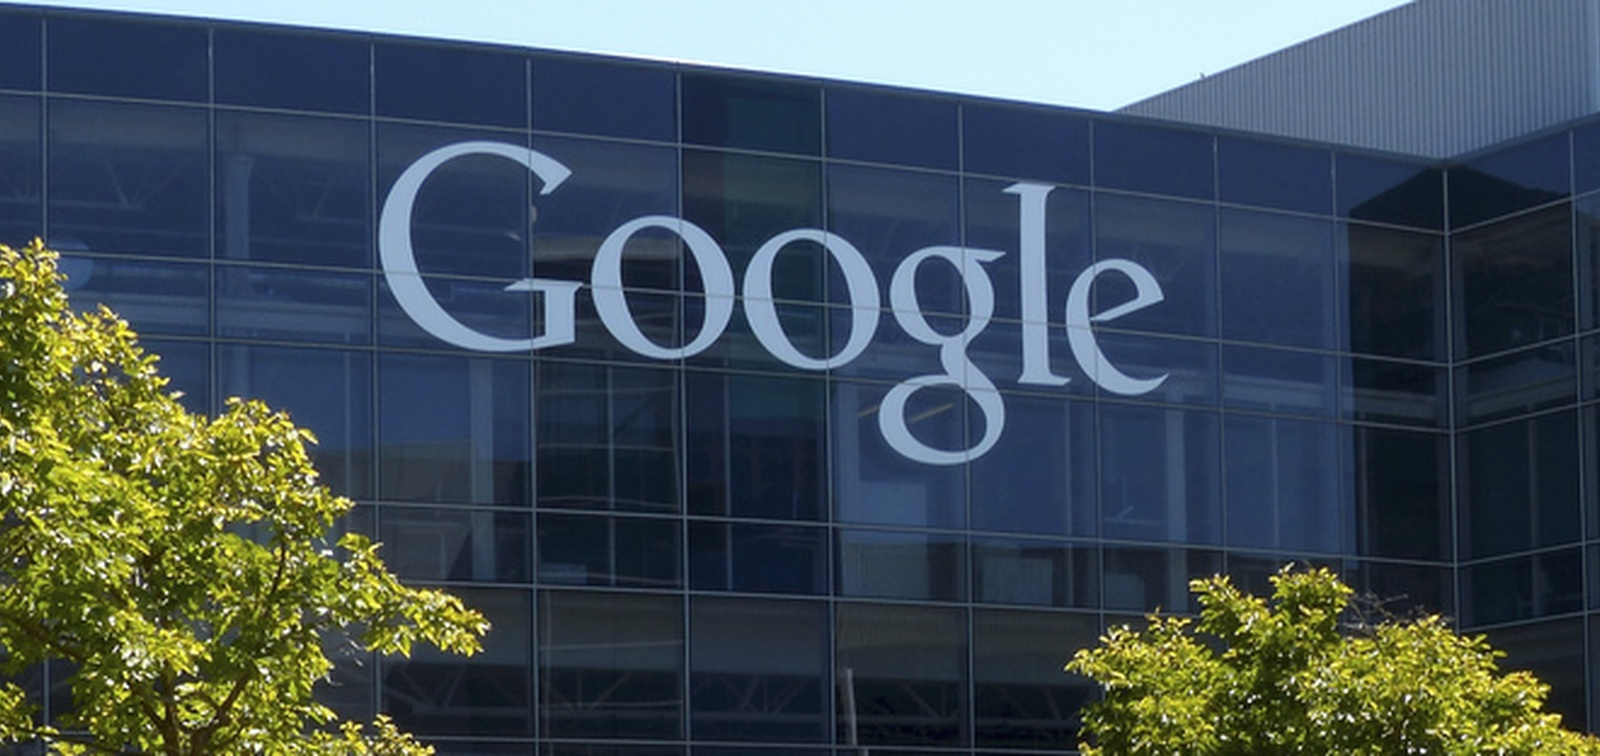 Google opens new office near Mayo Clinic campus to galvanize tech collaboration